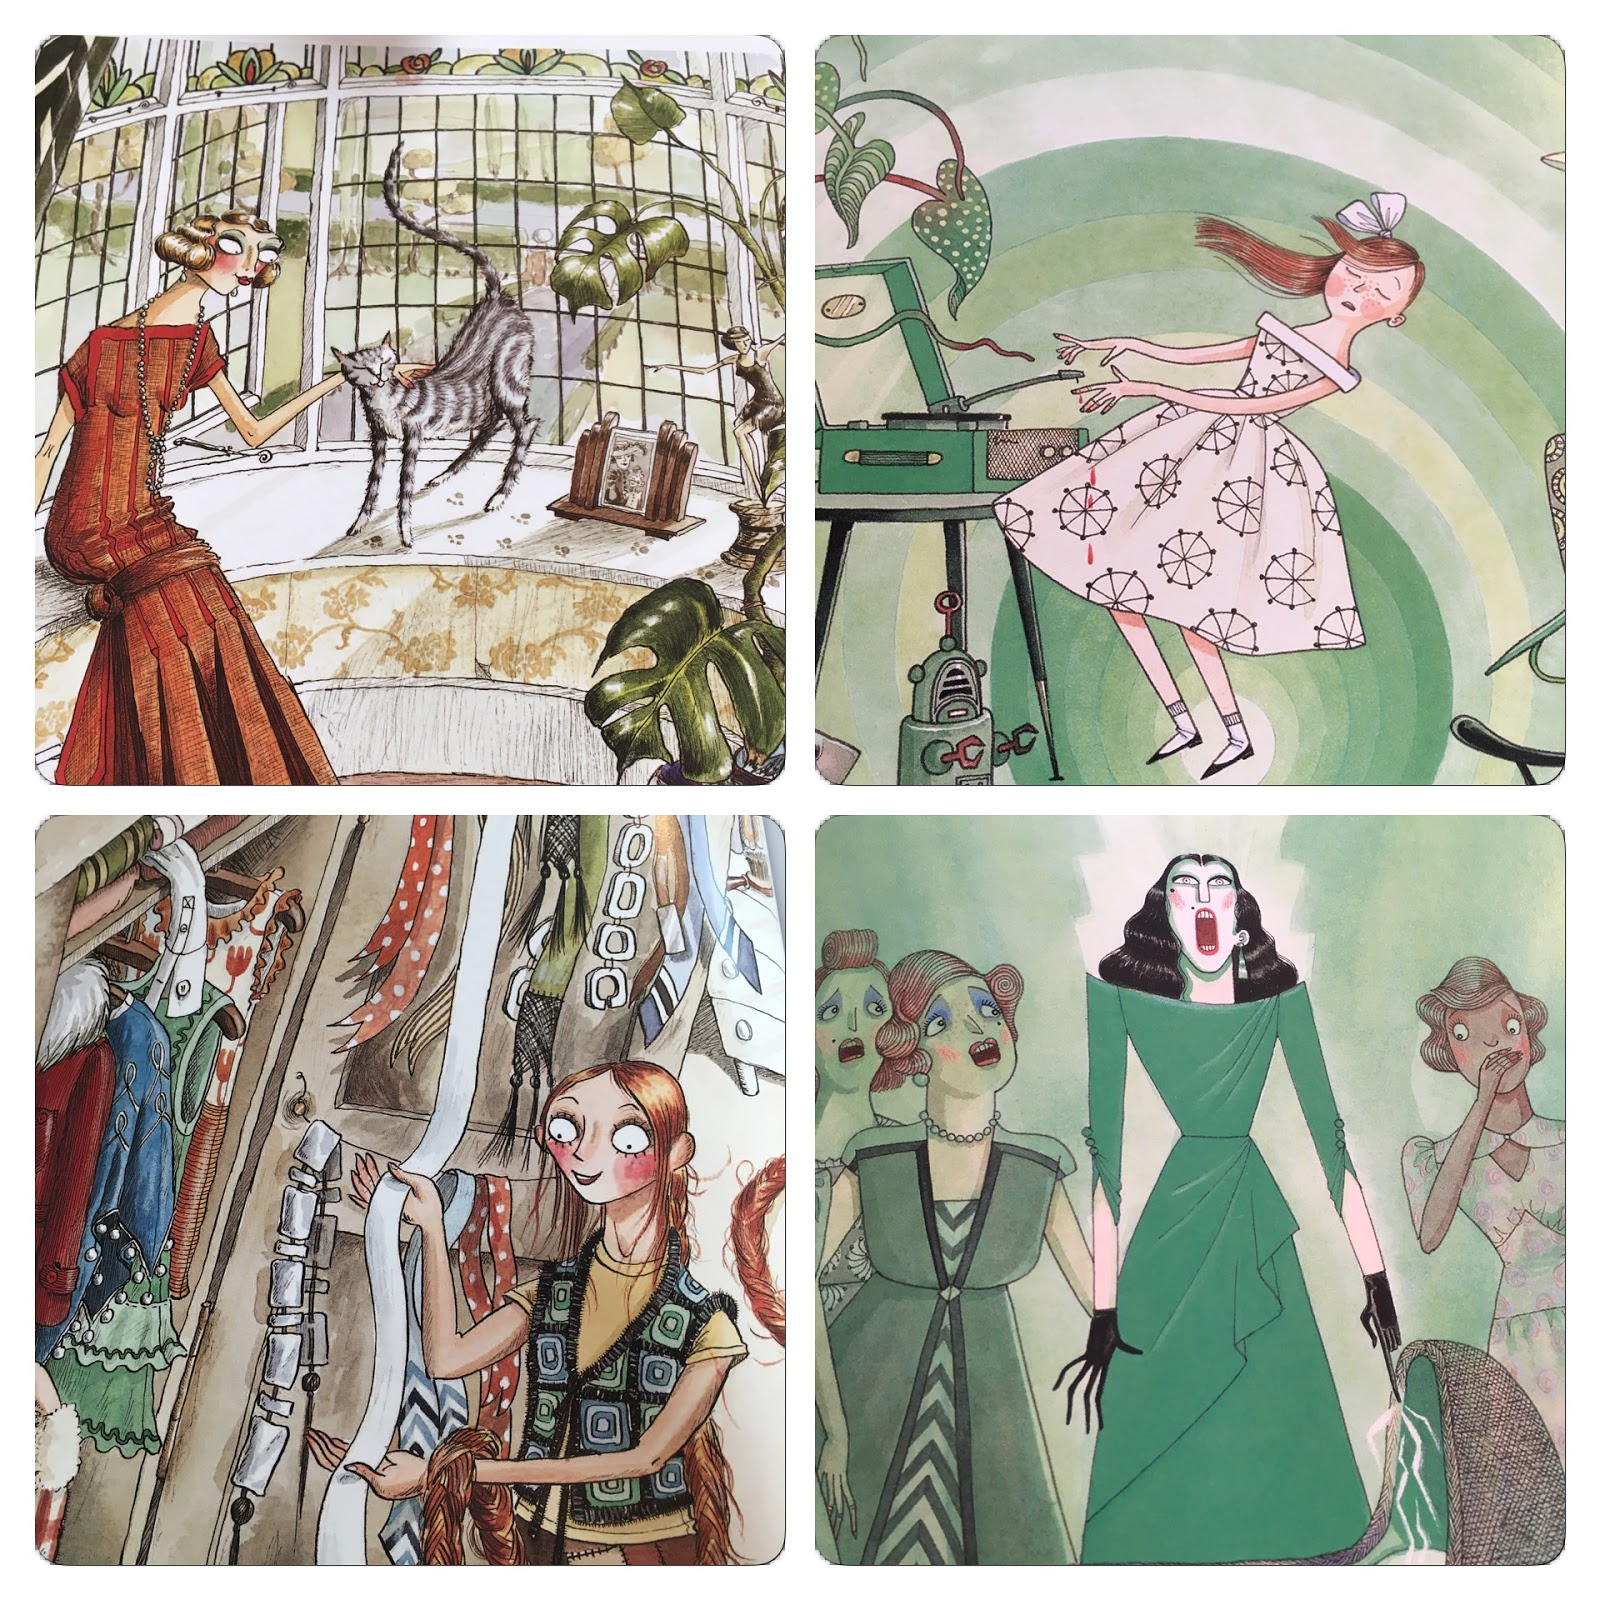 The mid century modern style is hugely popular right now and rightly - Chosen For Its Quirky Brilliance And Beautiful Period Illustrations Re Inventing A Classic Tale In Mid Century Style And With A Refreshing Feminist Twist